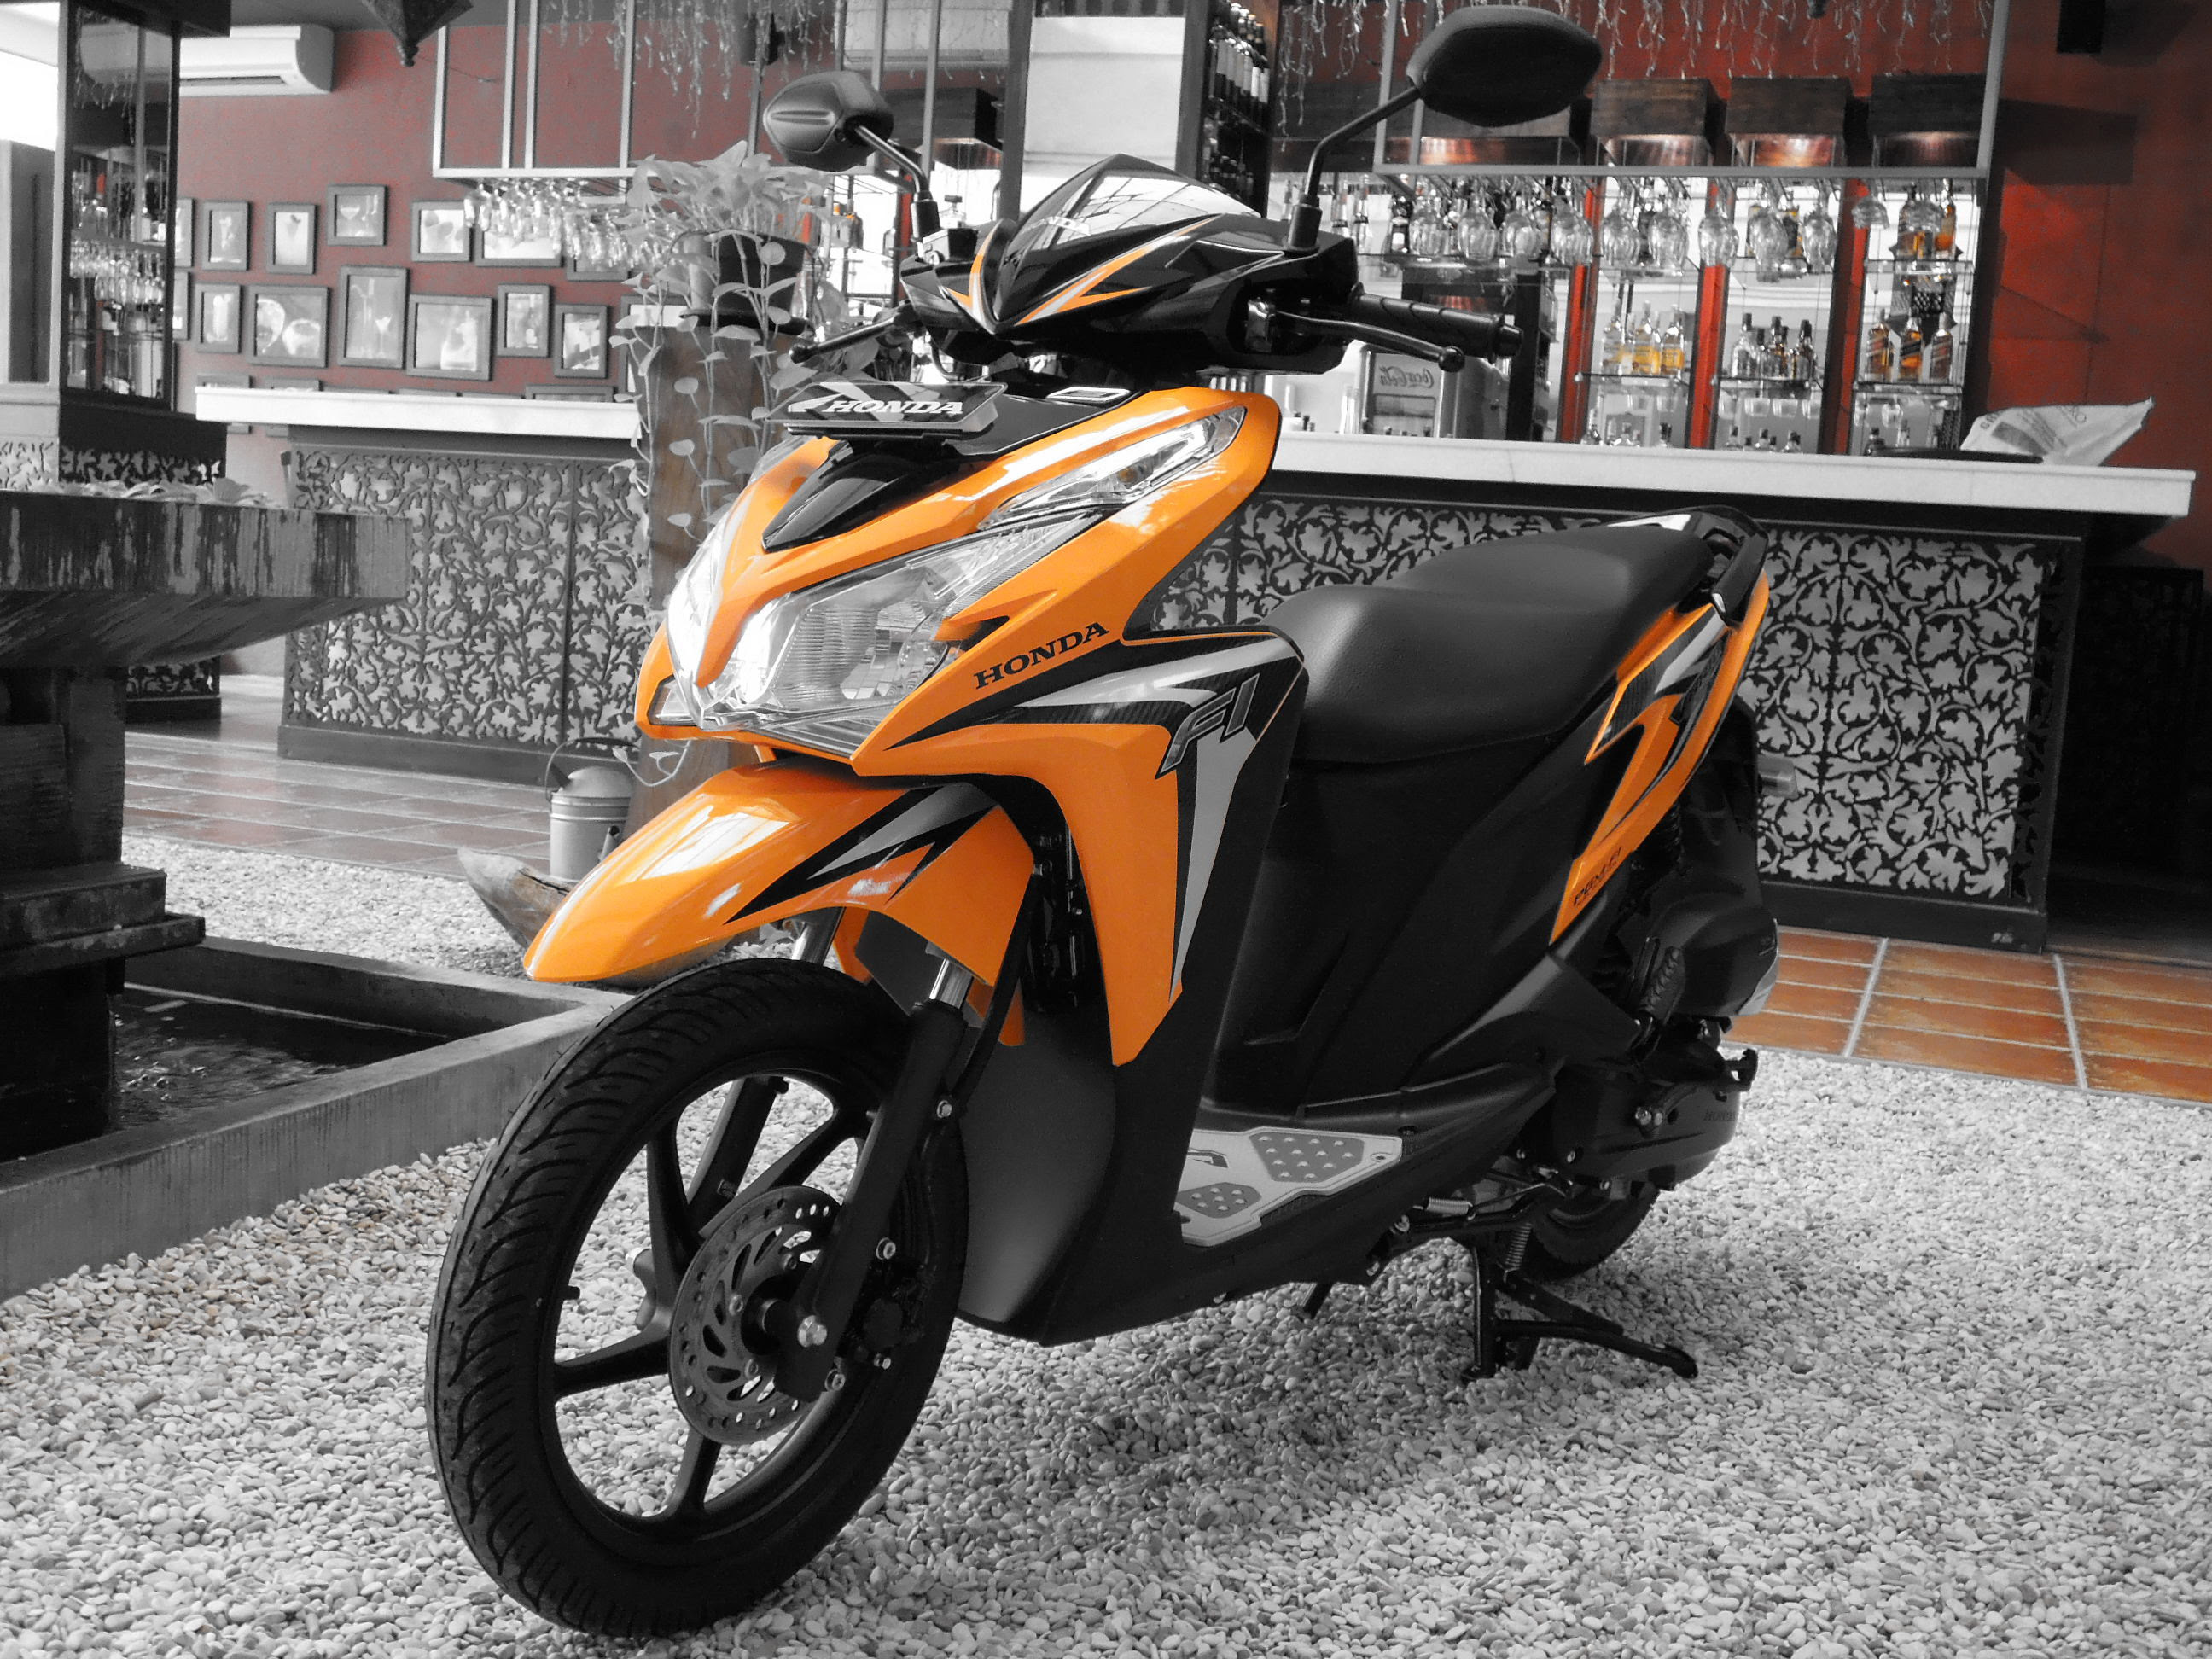 Download Kumpulan Modifikasi Motor Vario Cbs 2013 Terlengkap Velgy